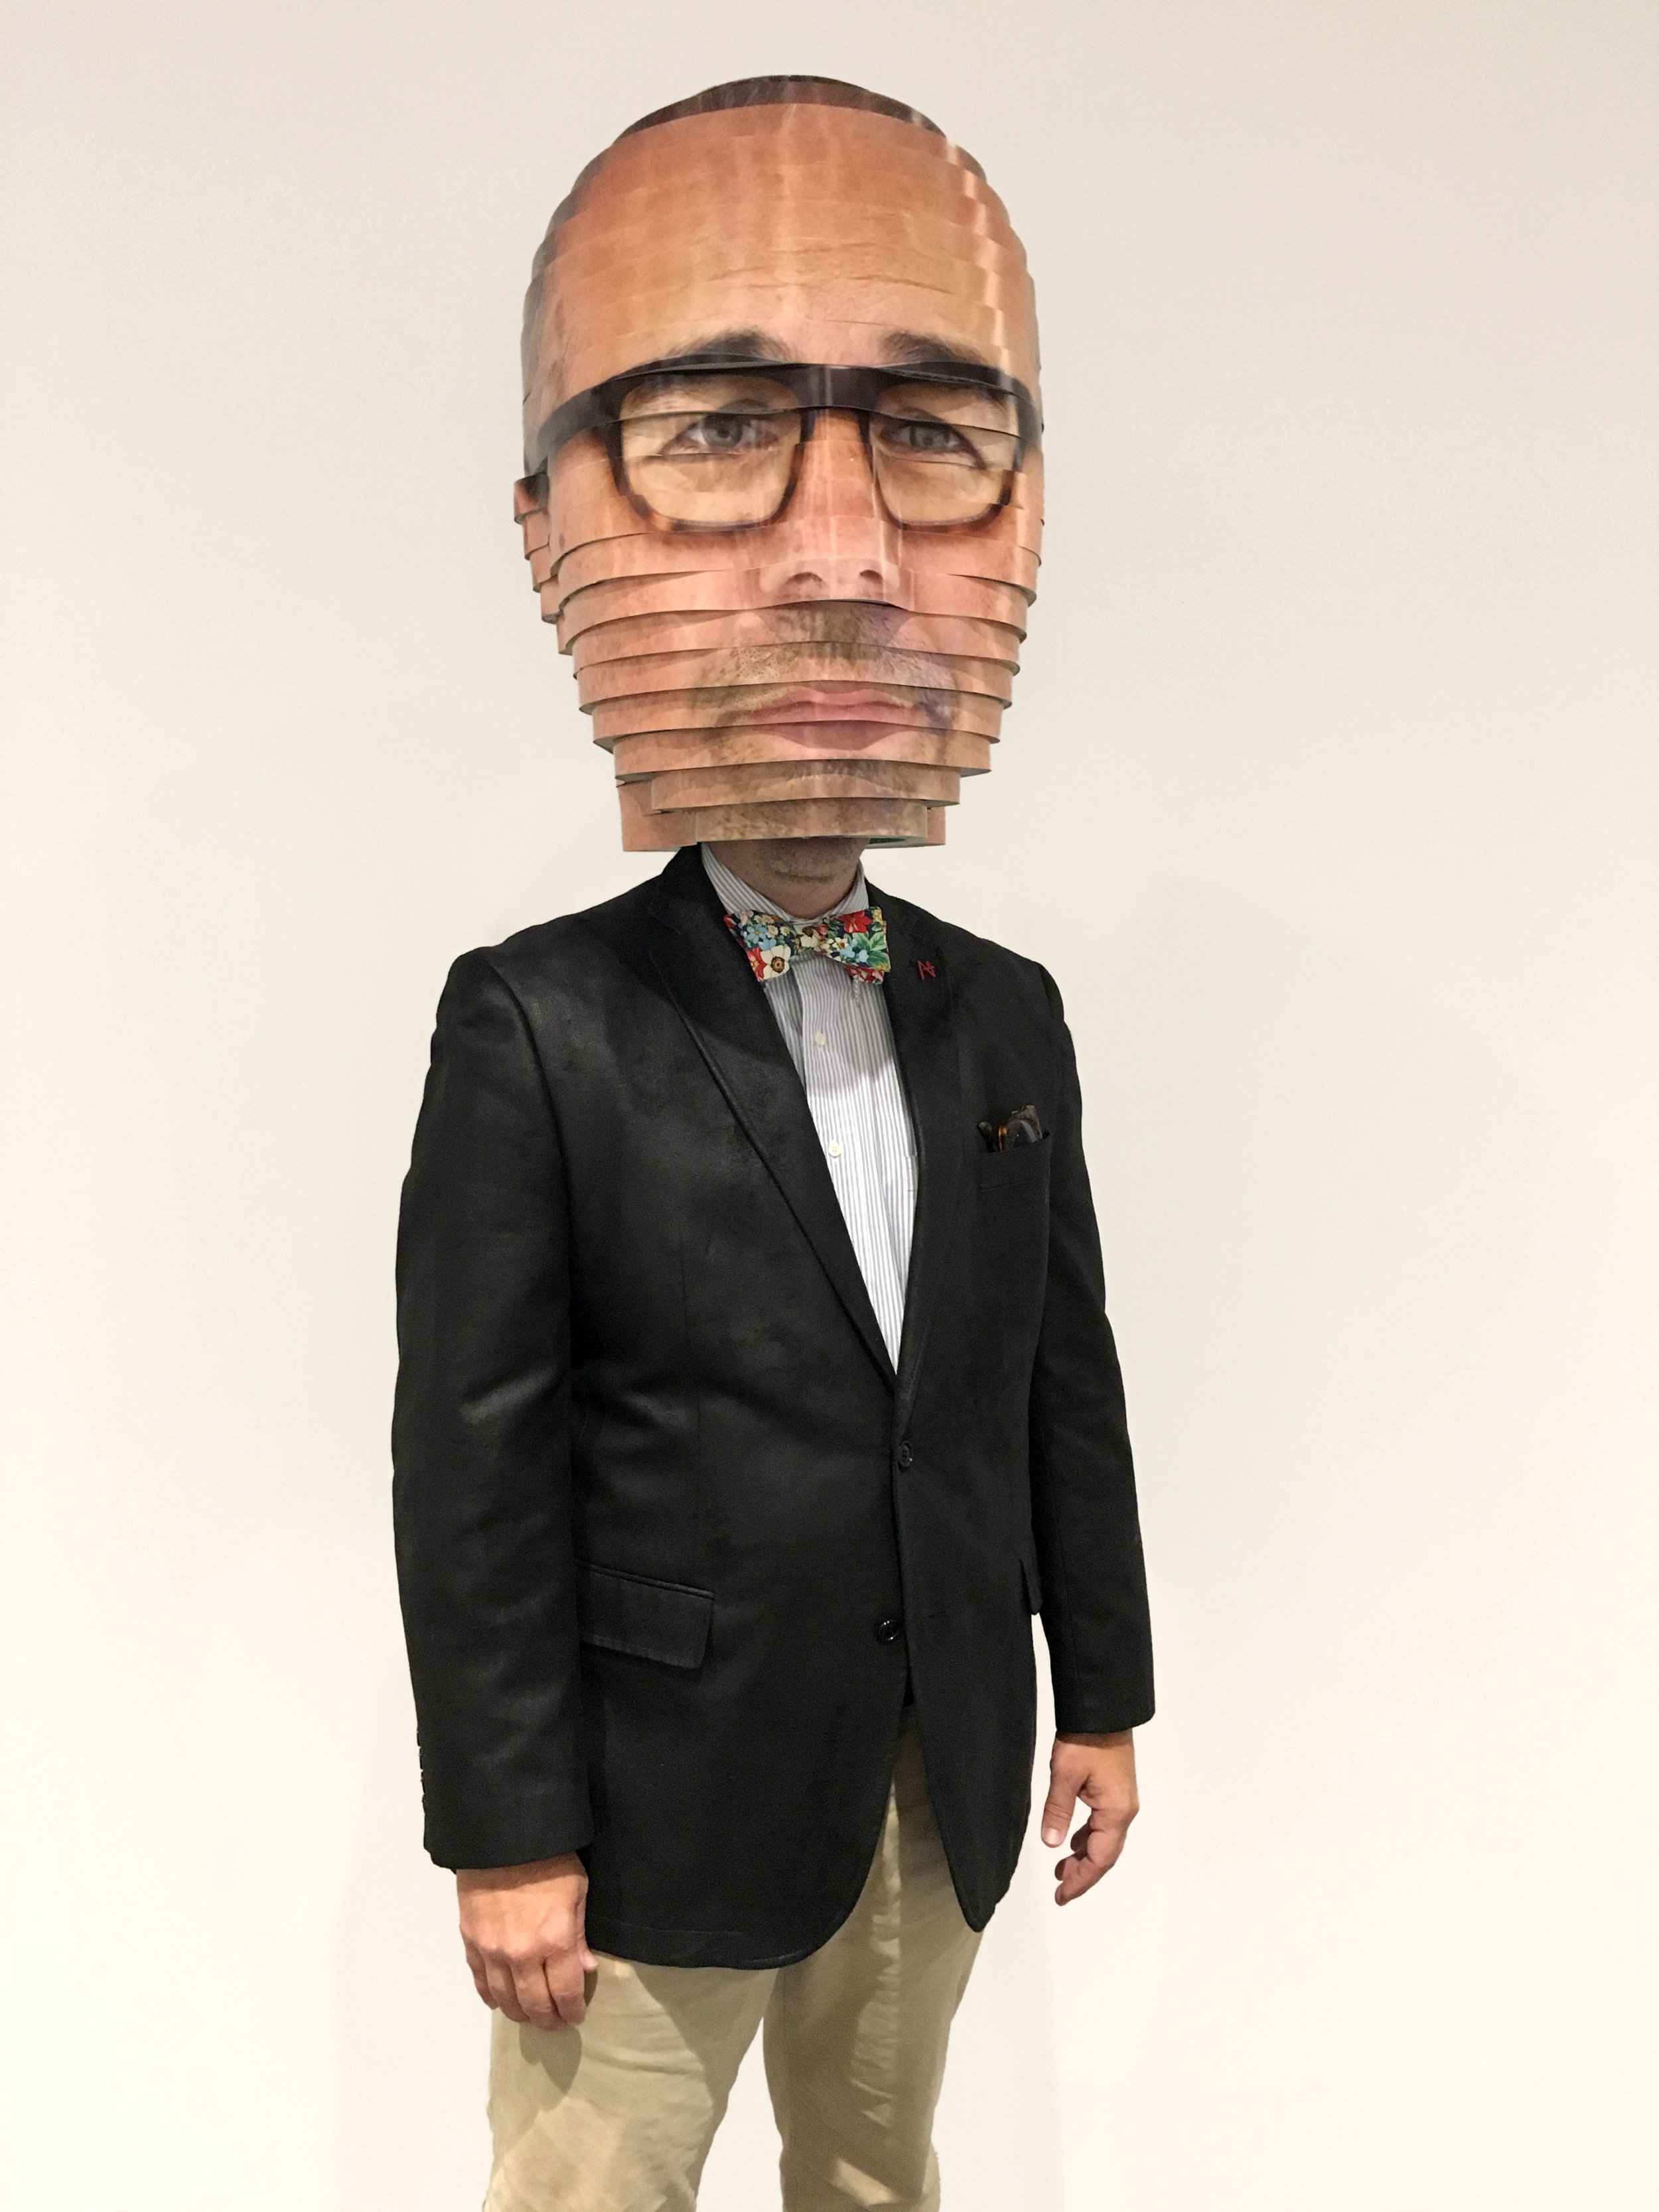 """Matthew Mohr, the artist behind the creation of the piece """"As We Are"""" is featured in this month's newsletter. He is pictured wearing a mini-replica of his own interaction with """"As We Are."""""""